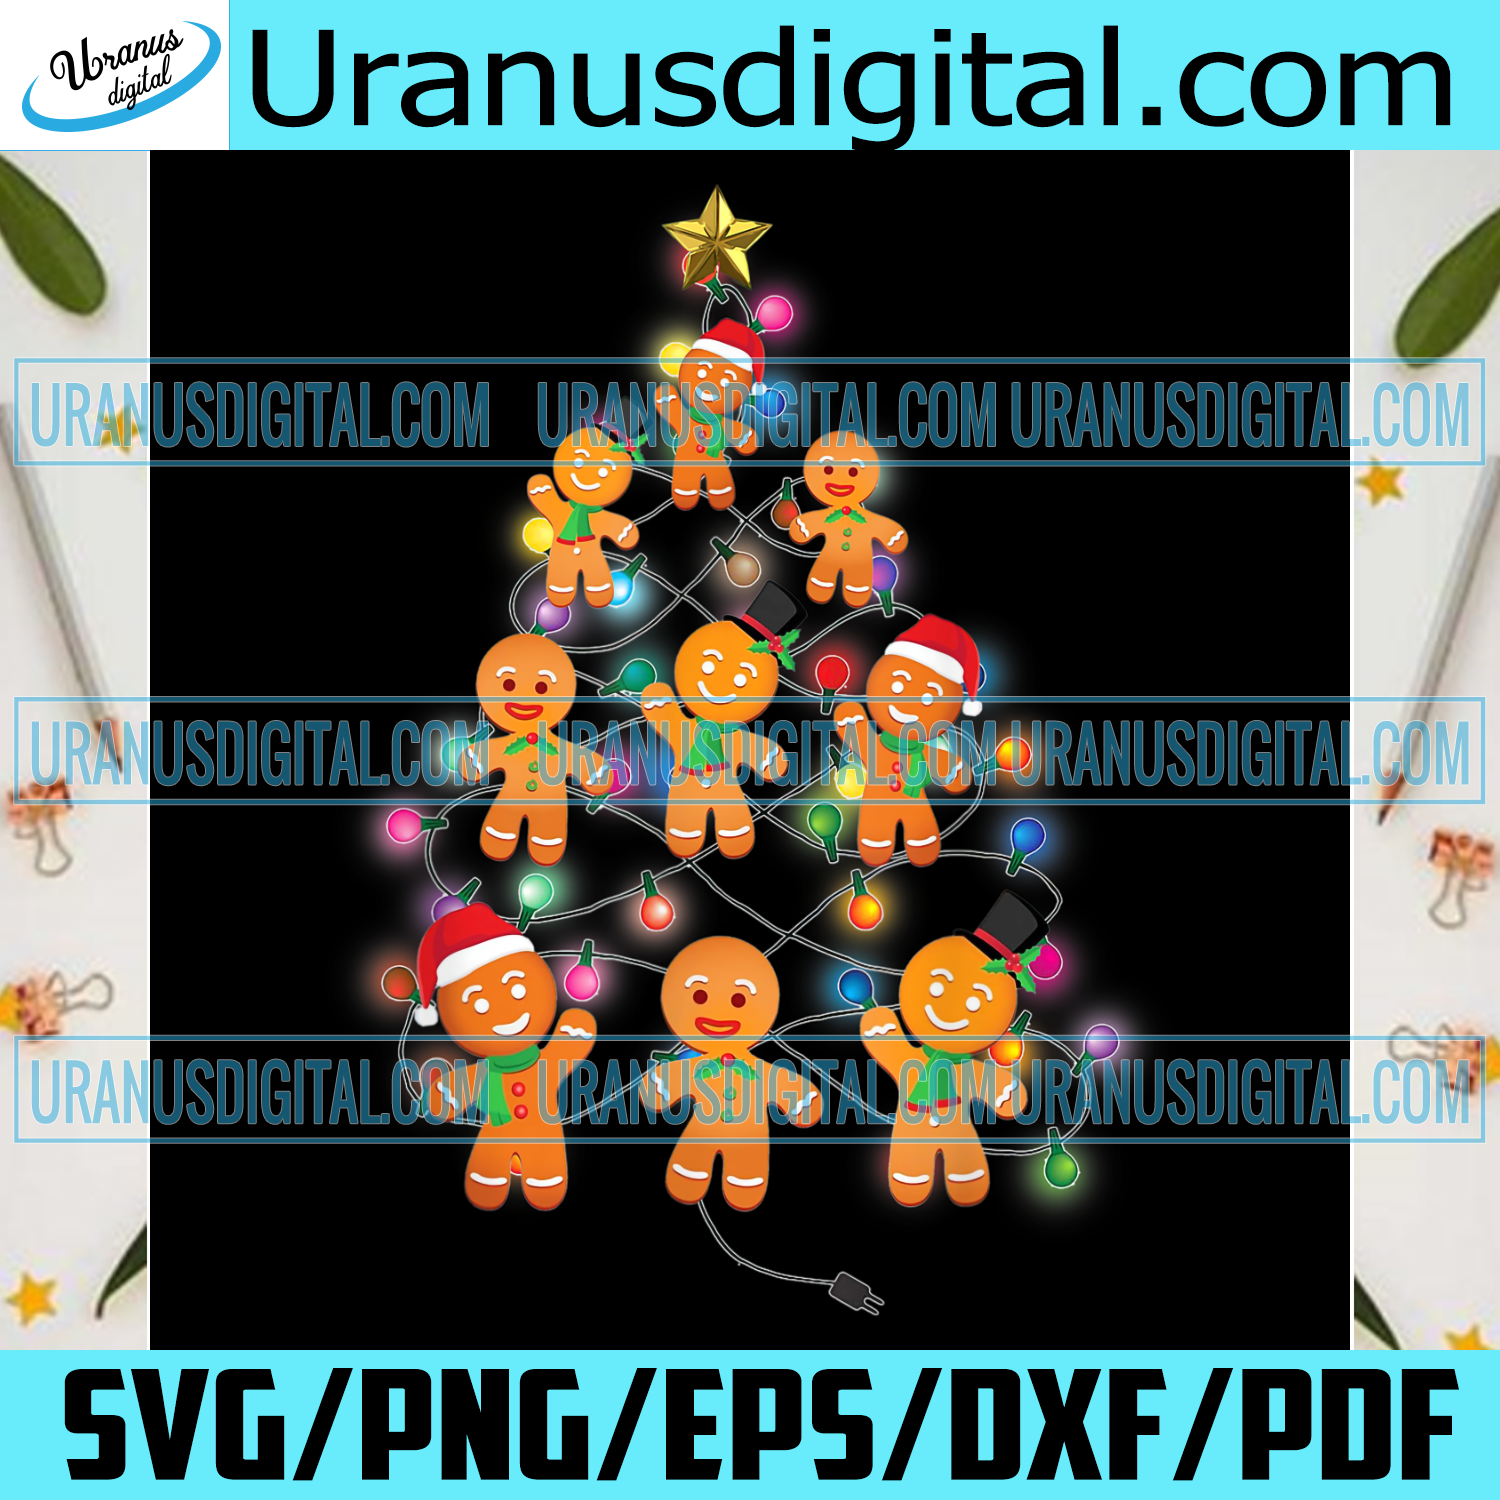 Cookie Tree, Christmas Png, Cookie Png, Ginger Cookie Png, Christmas Gift Box, Christmas Bell Png, Christmas Gift, Claus Png, Love Claus, Noel Png, Christmas Icon, Christmas Quote, Christmas Tree, Christmas Tree Png